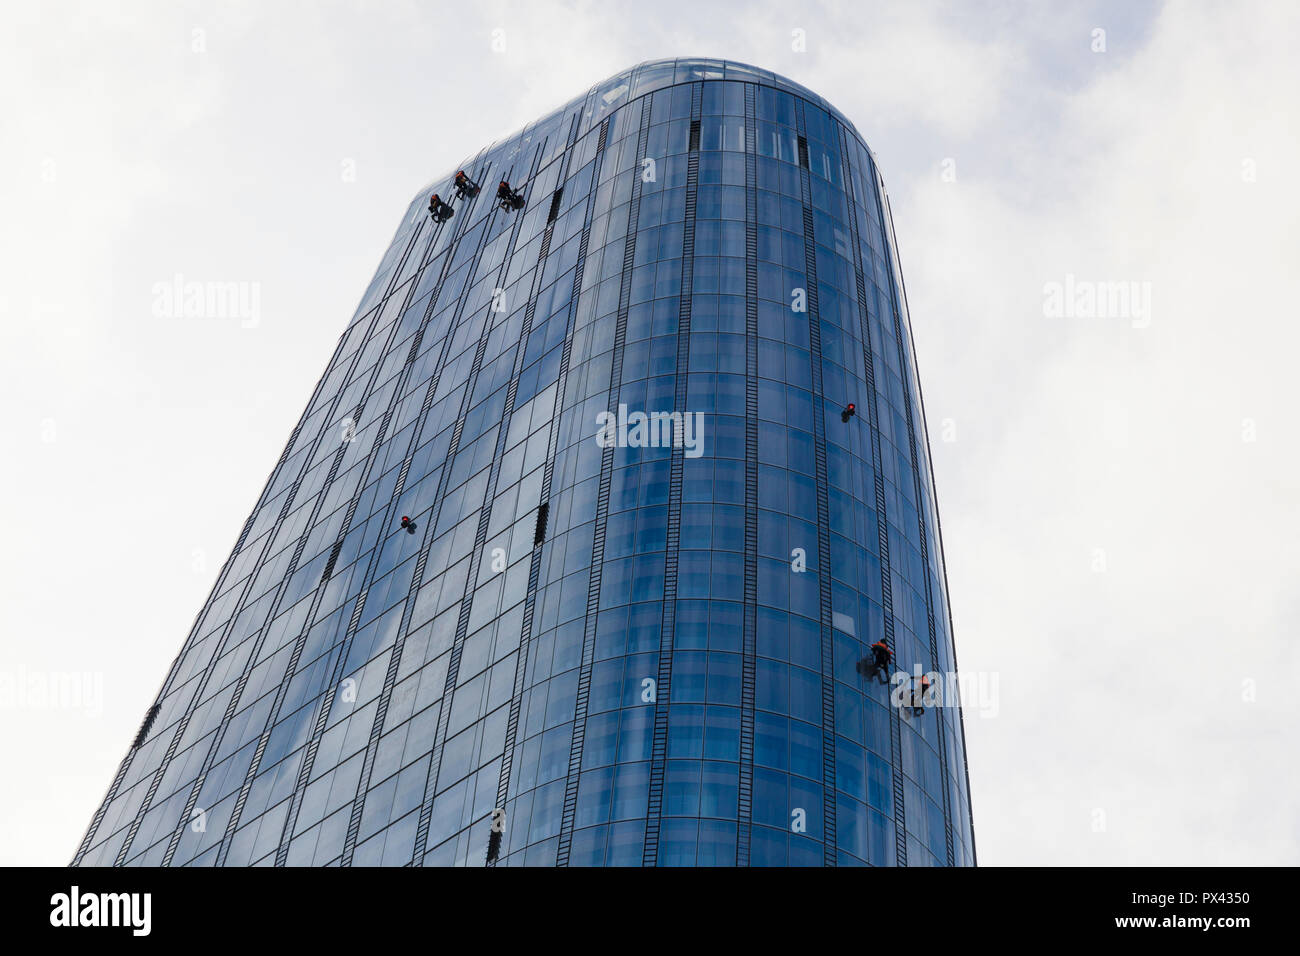 d68c9b280f Maintenance operatives or window cleaners working from ropes on the outside  of a tower block in London